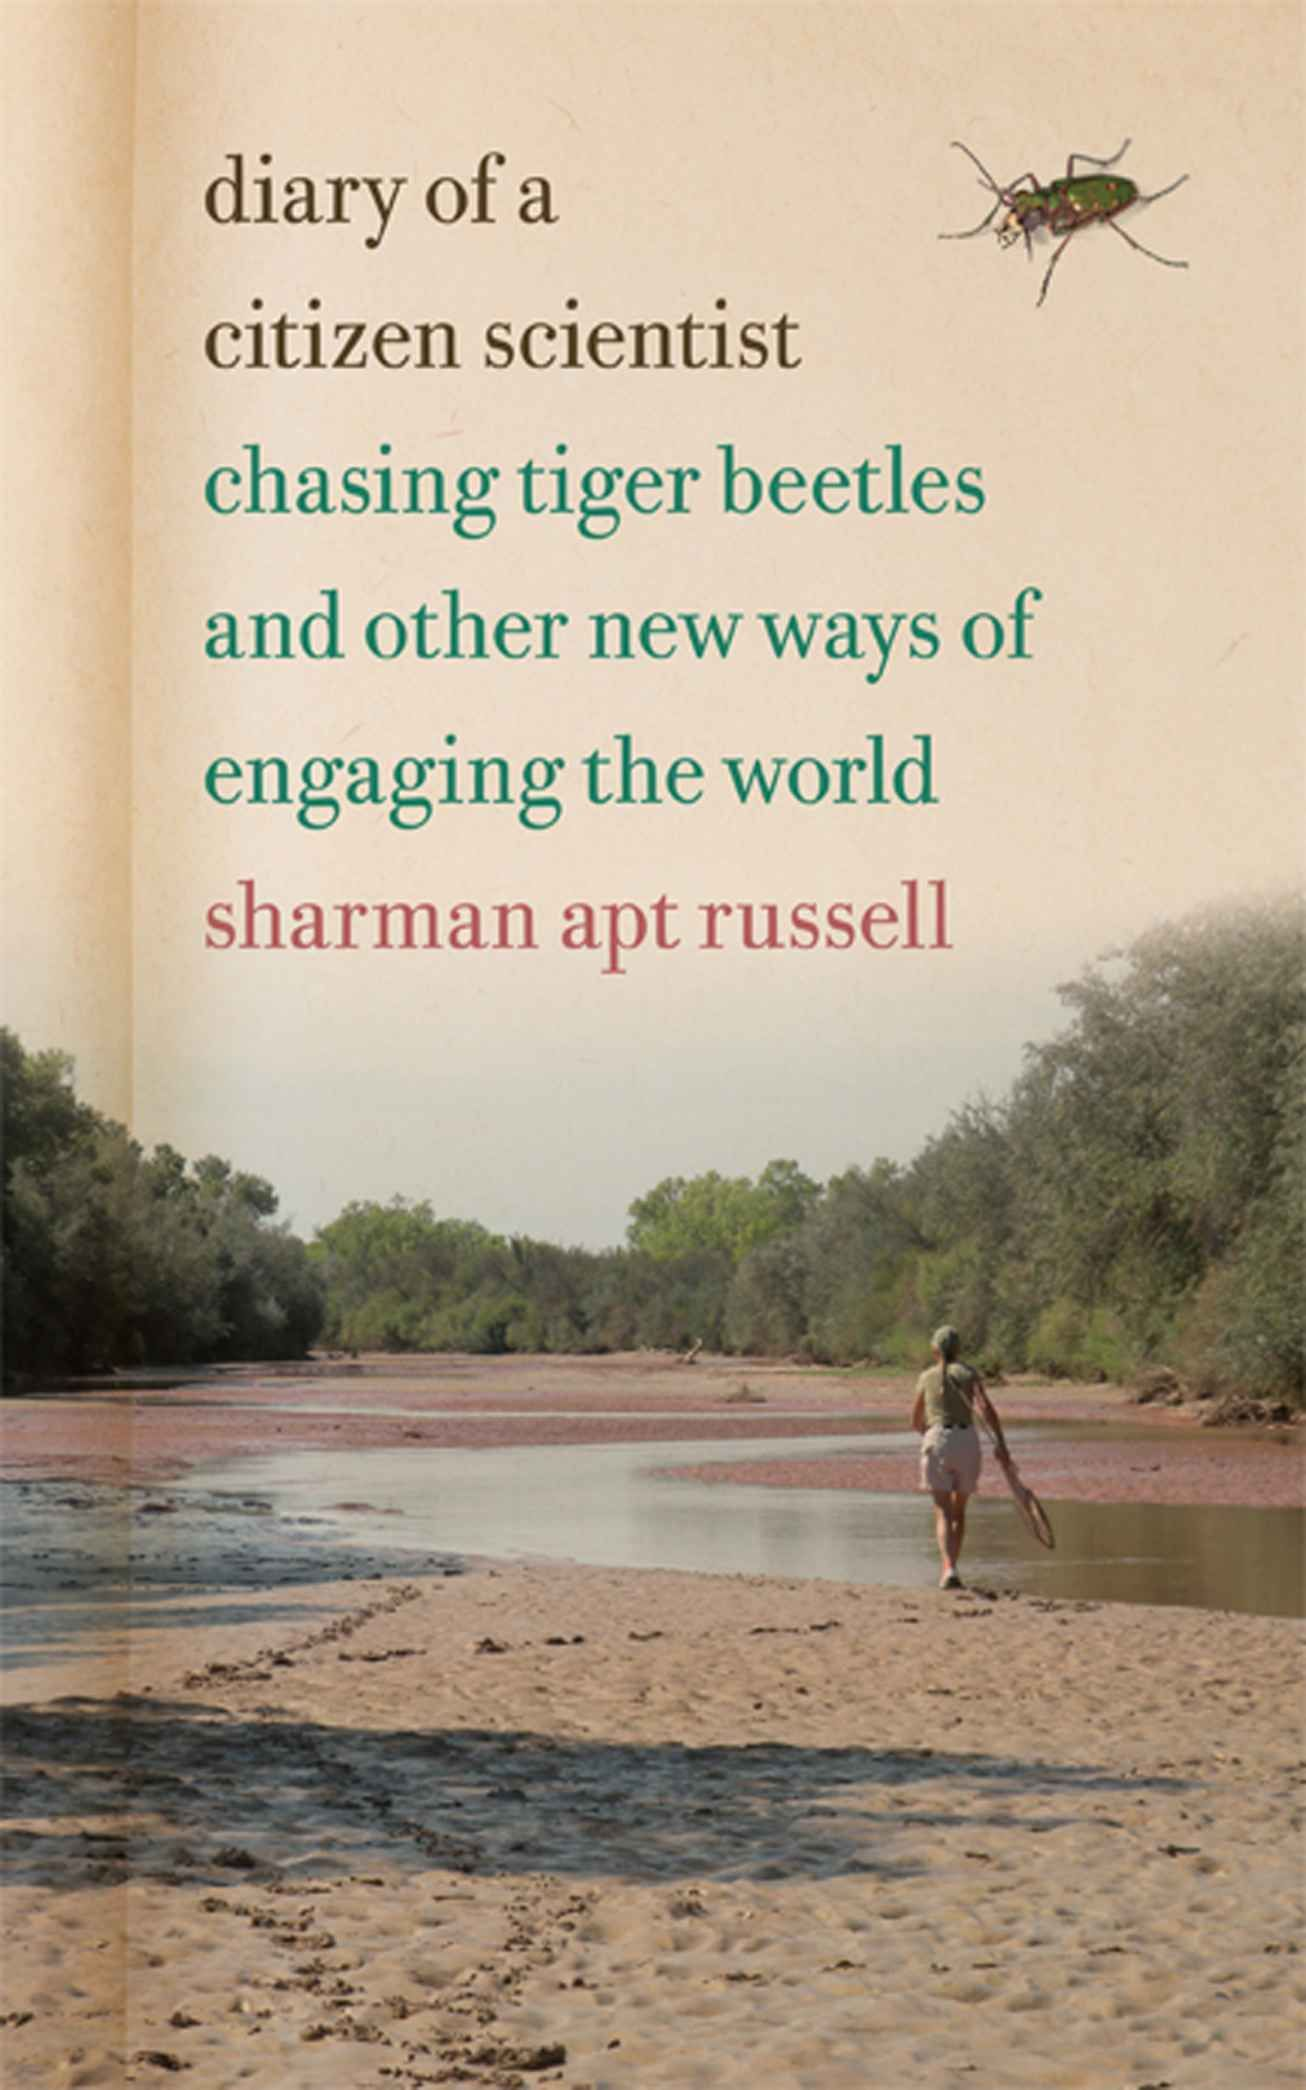 Diary of a citizen scientist chasing tiger beetles and